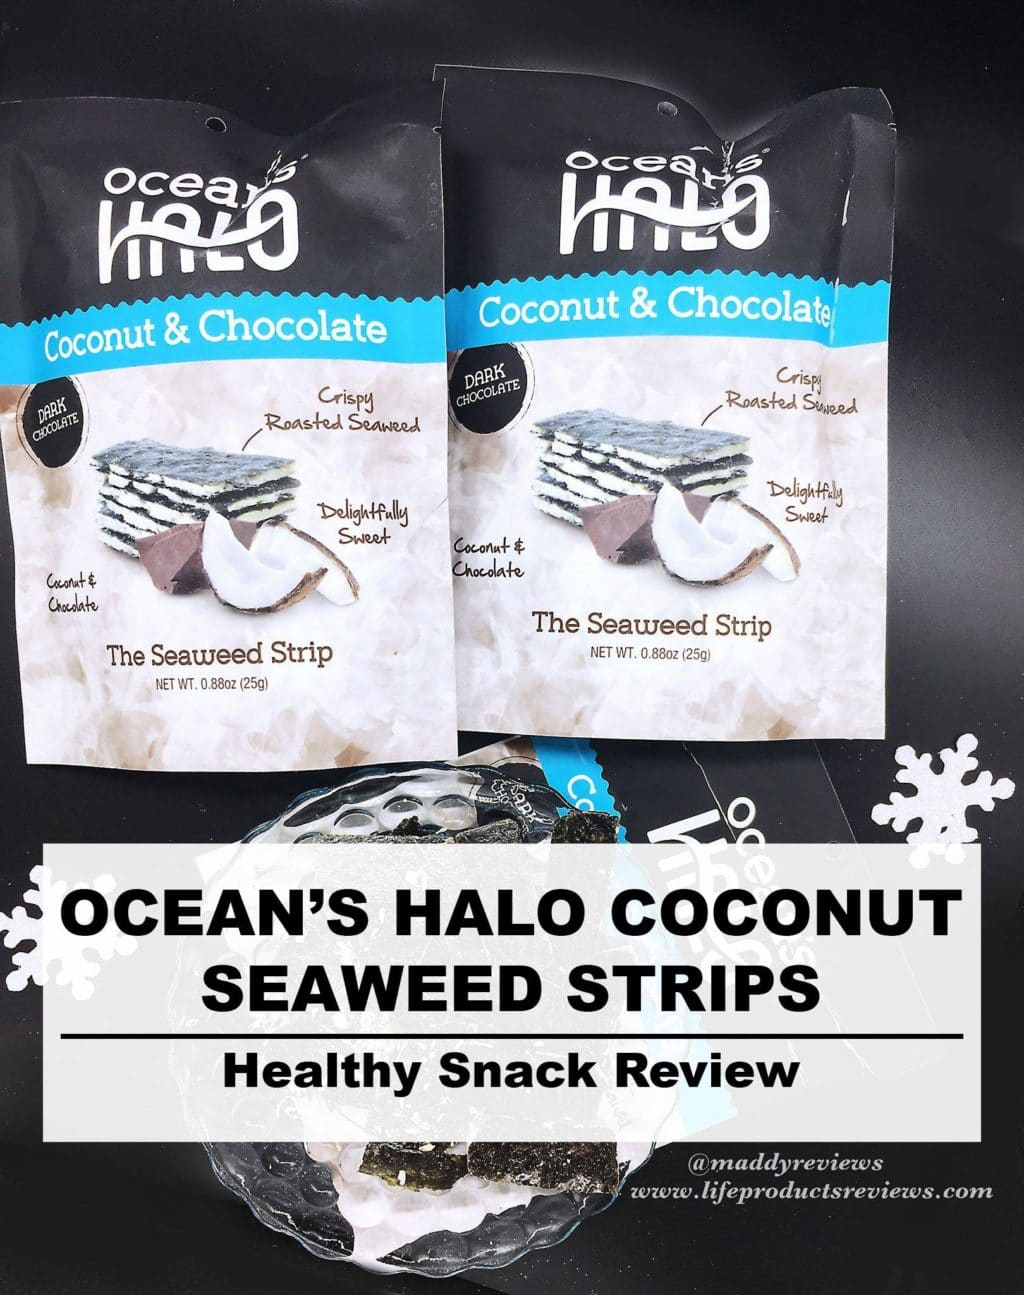 Vegan-Nongmo-snacks-Oceans-halo-seaweed-strip-snack-treat-dessert-healthy